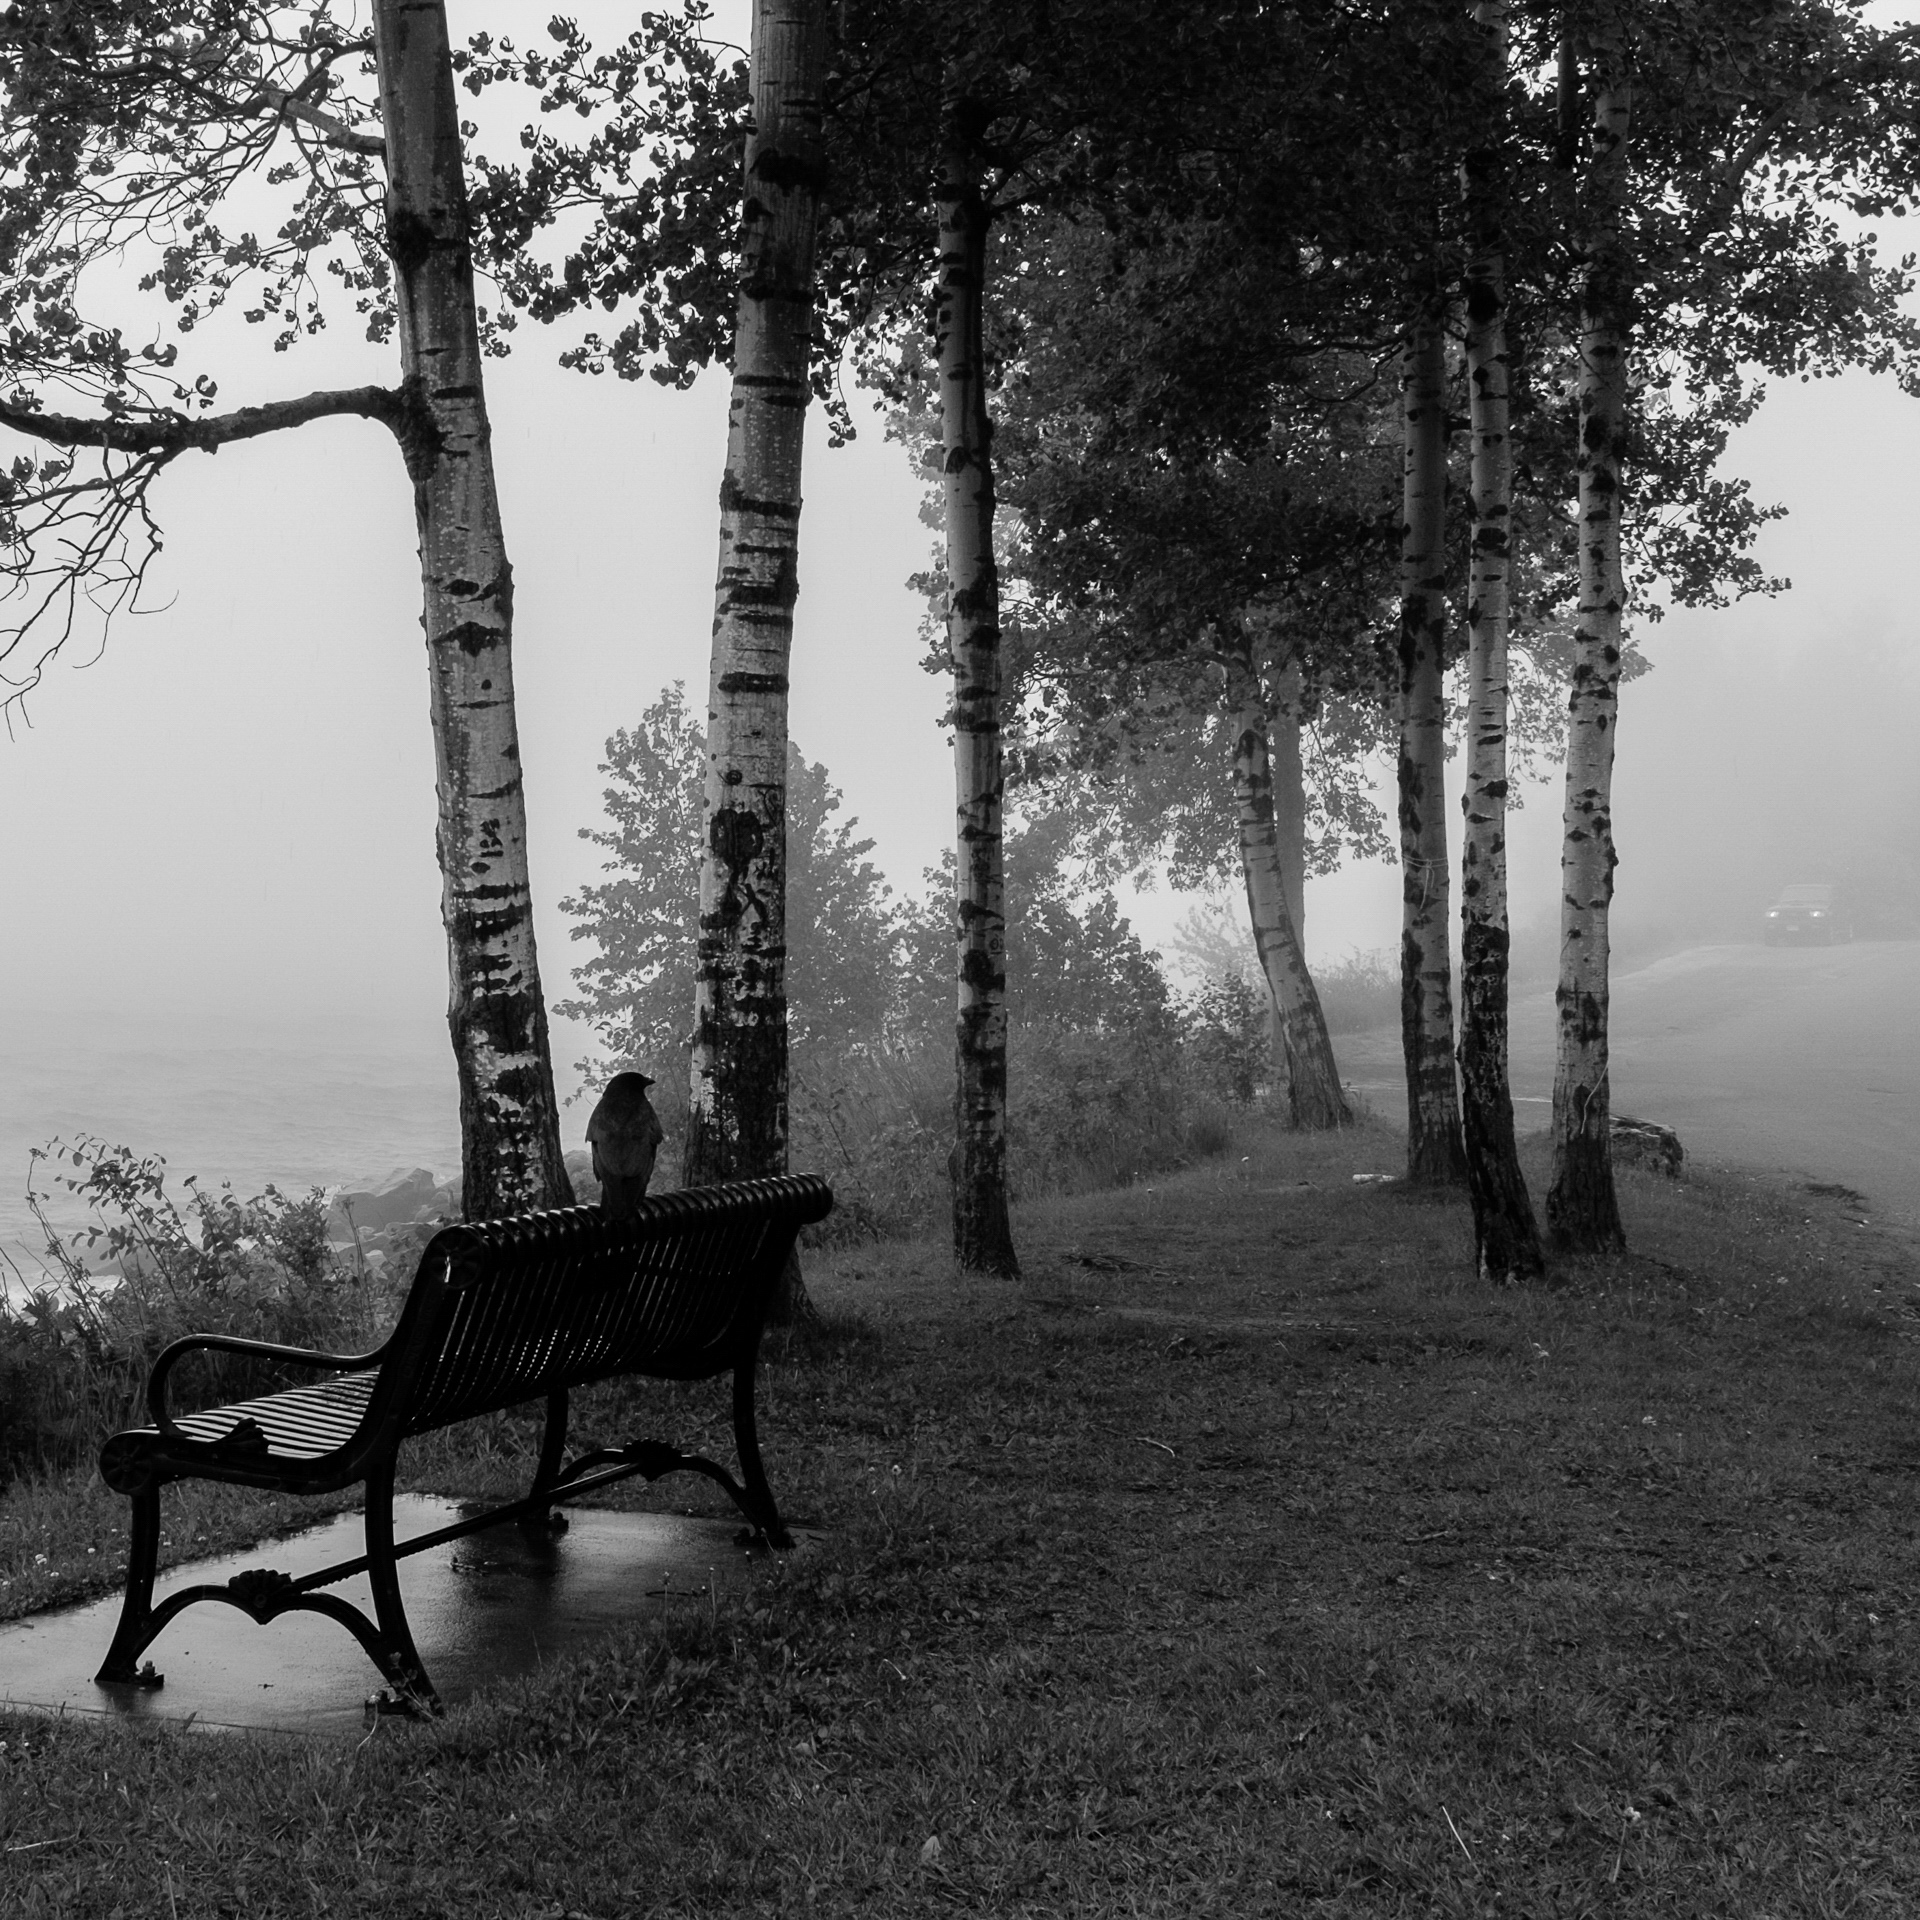 Foggy Morning Encounter - Monochrome Print (Open) - Name Withheld Per Request